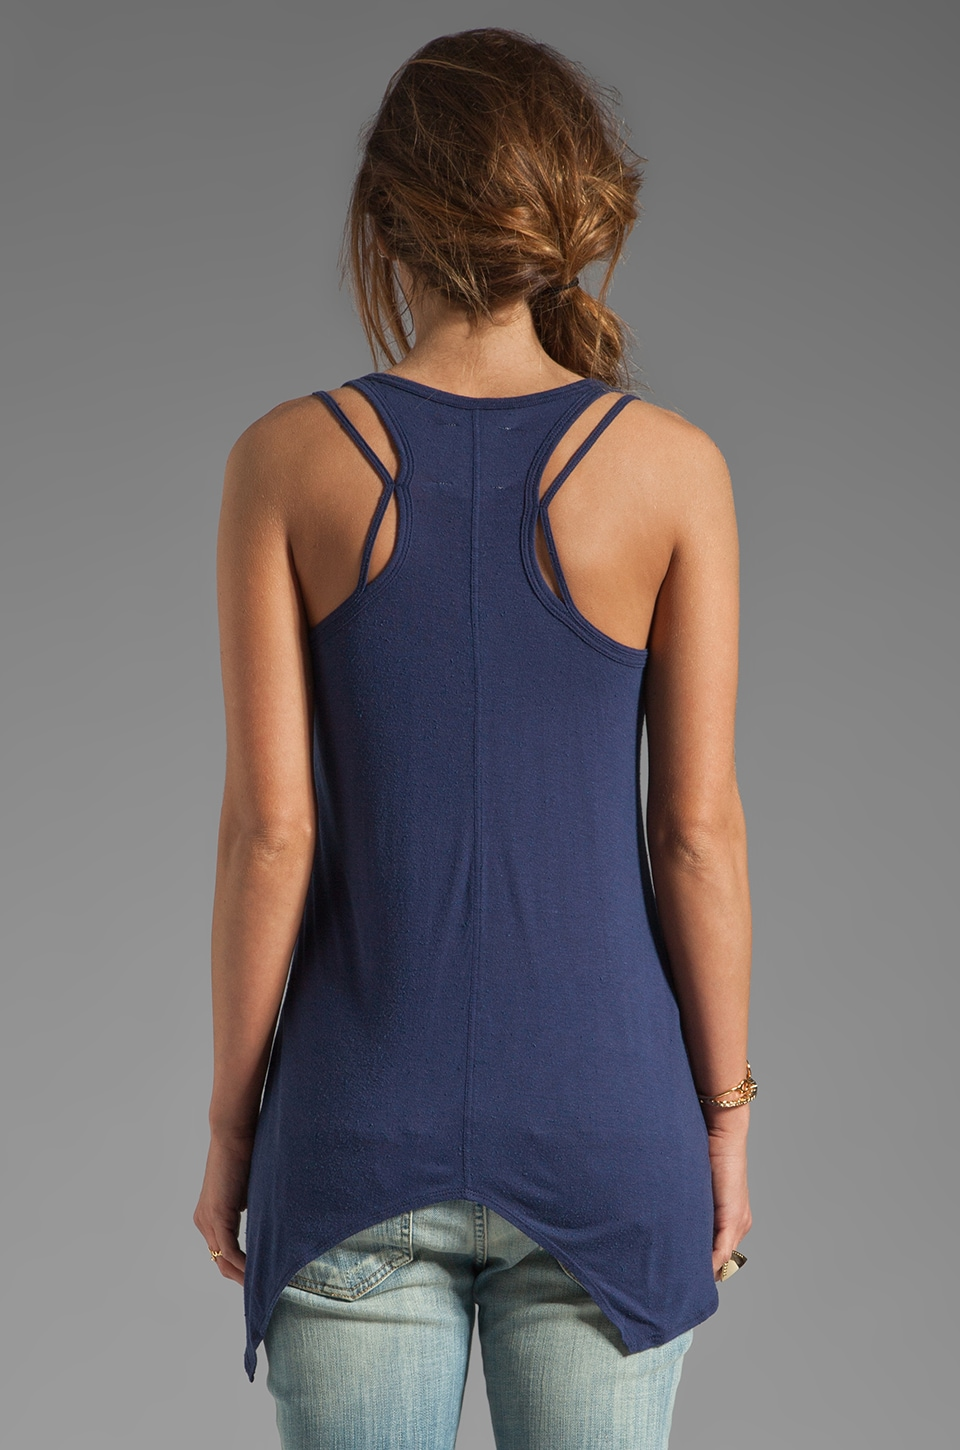 Chaser Deconstructed Strap Tank in Sapphire